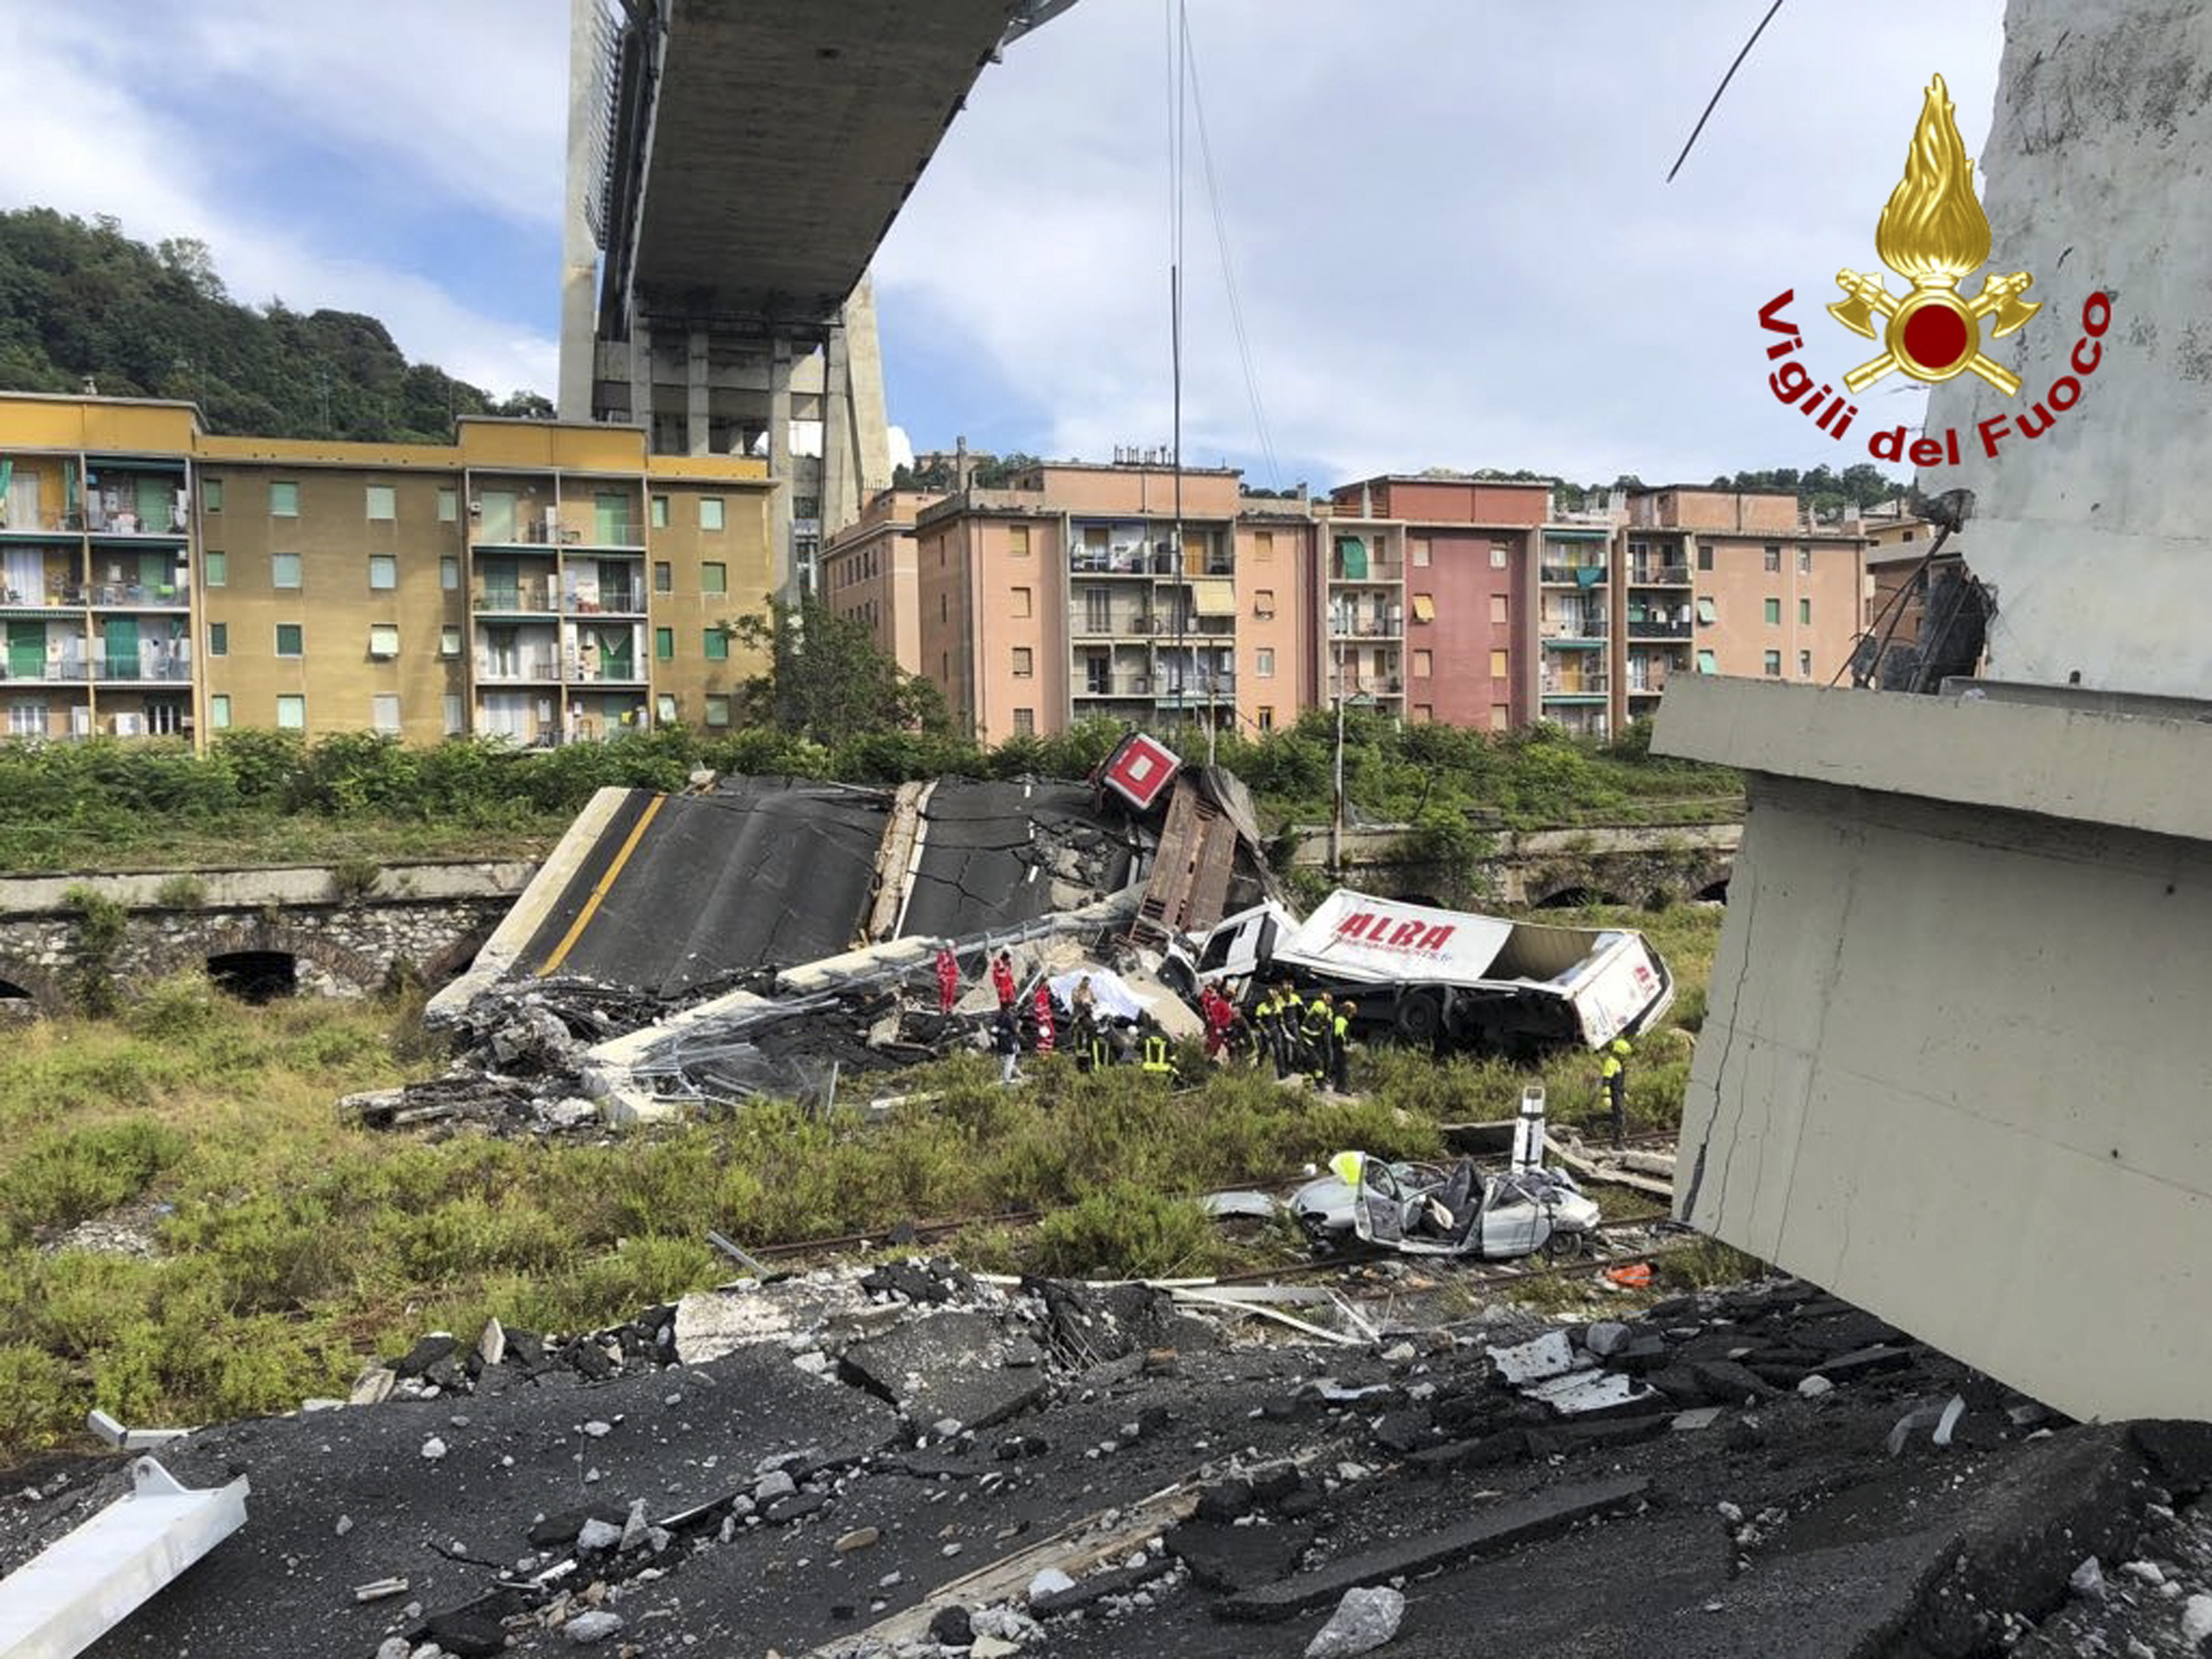 <div class='meta'><div class='origin-logo' data-origin='none'></div><span class='caption-text' data-credit='Vigili Del Fuoco via AP'>In this photo released by the Italian firefighters, rescue teams work among the rubble of the collapsed Morandi highway bridge in Genoa, northern Italy, Tuesday, Aug. 14, 2018.</span></div>